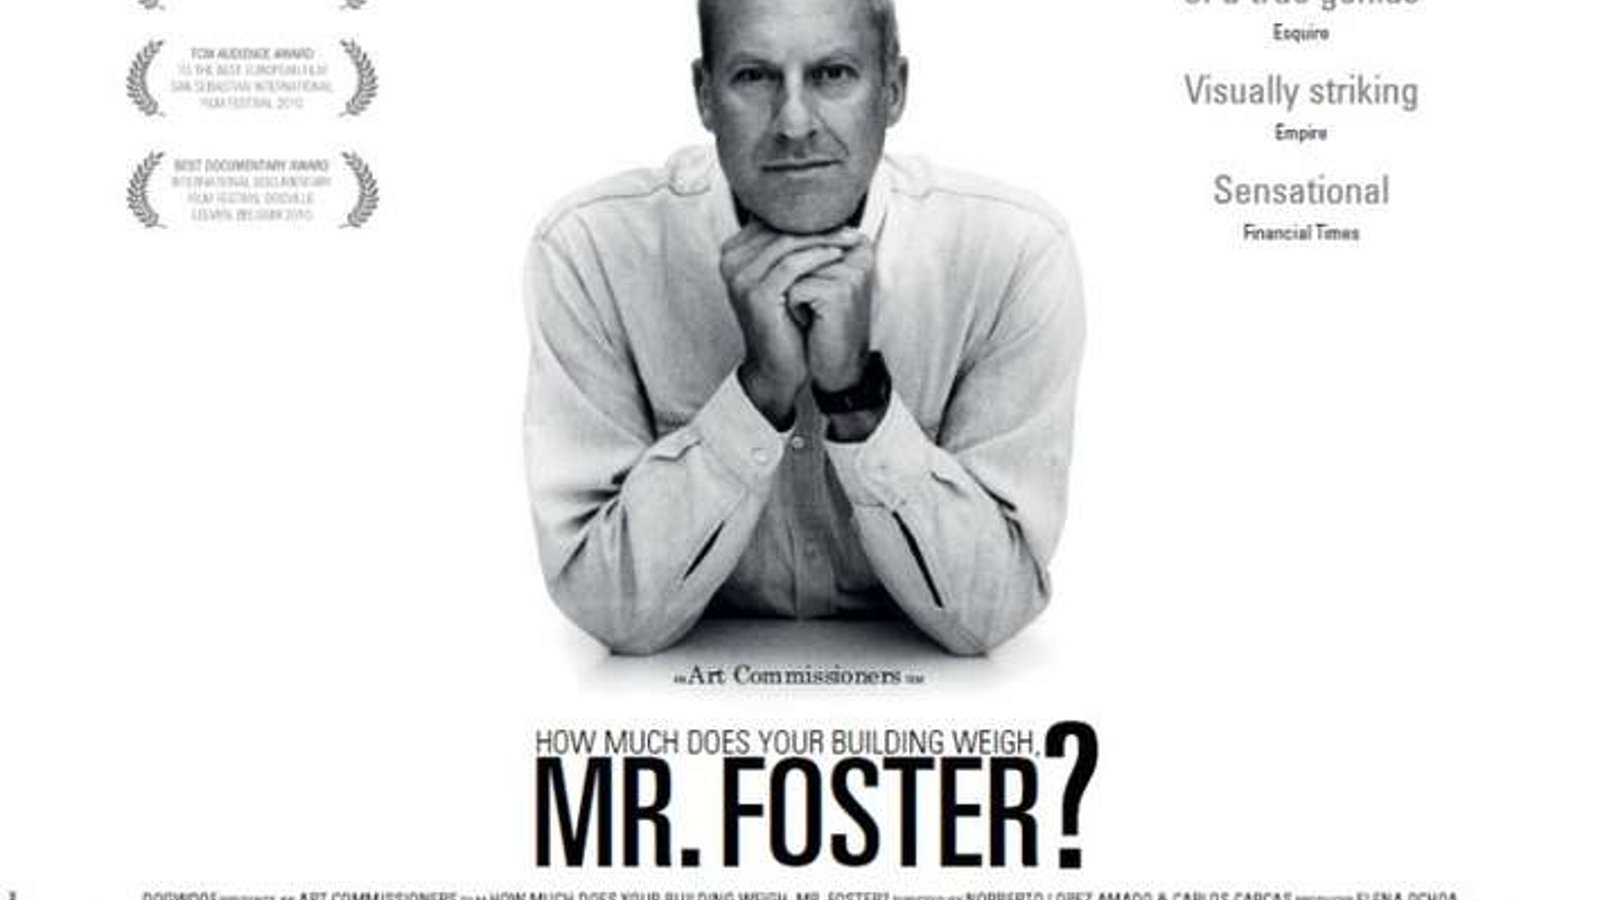 How Much Does Your Building Weigh, Mr Foster?